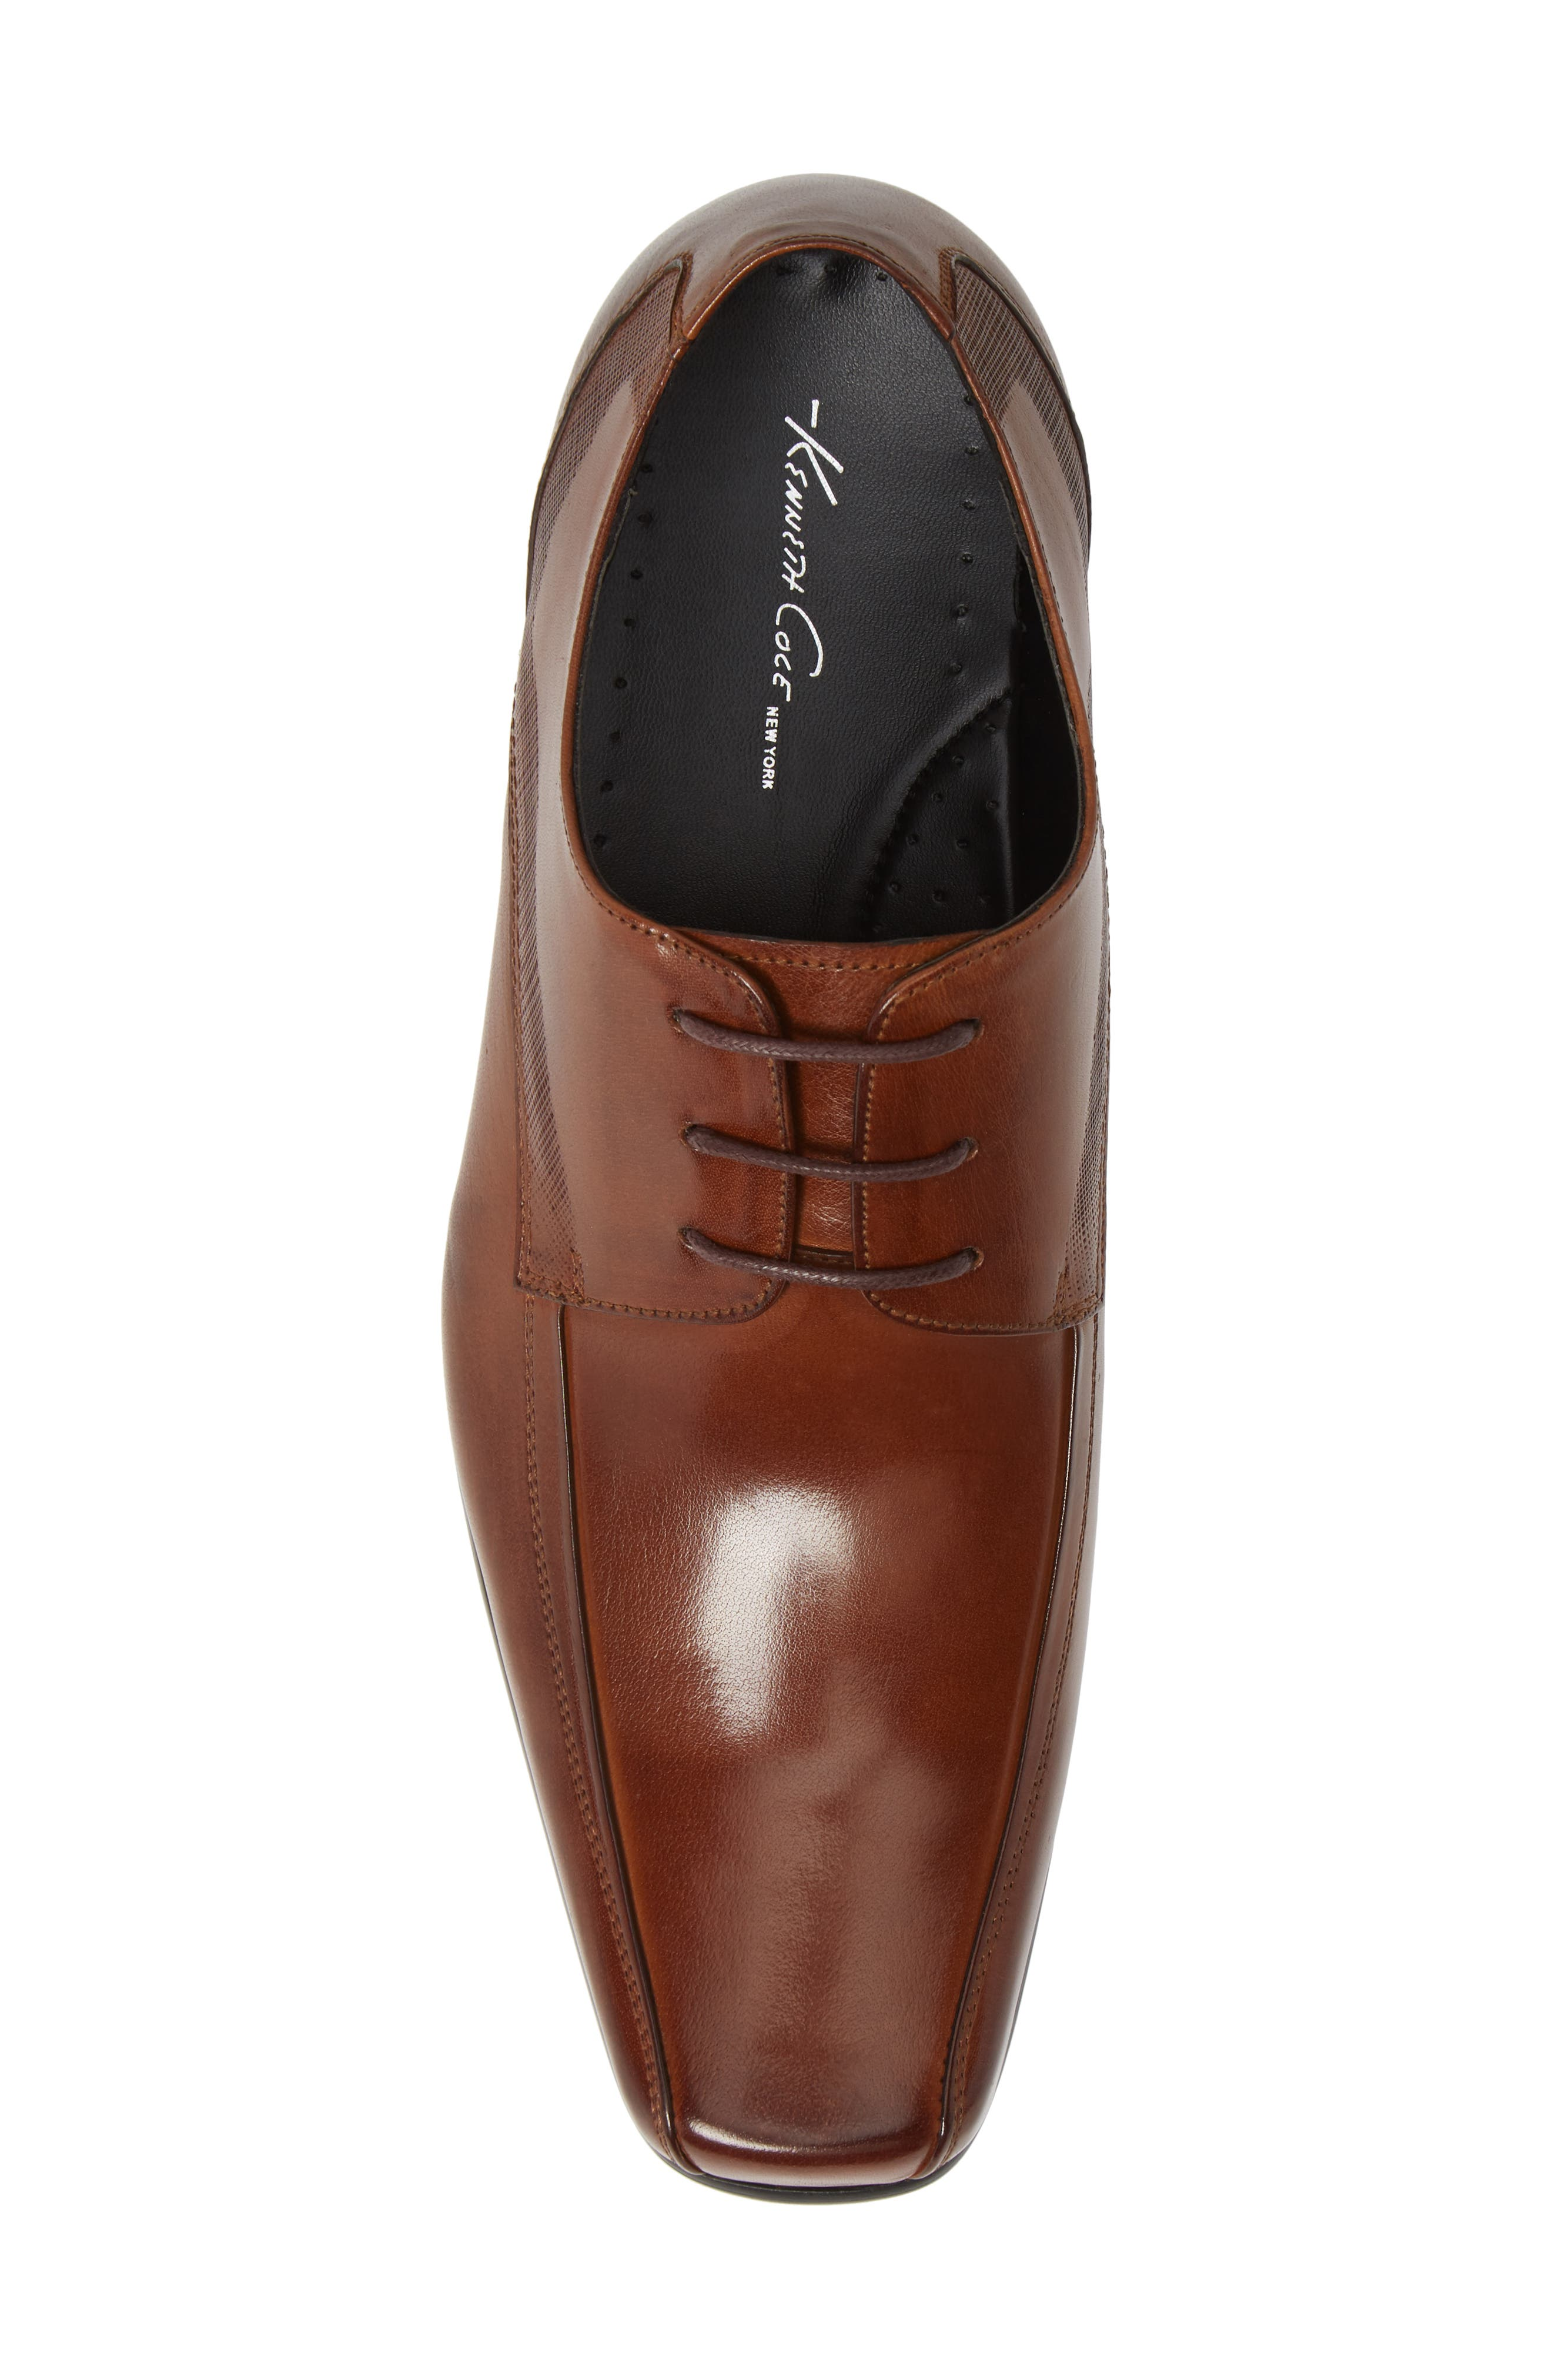 KENNETH COLE NEW YORK, Magic Place Bike Toe Derby, Alternate thumbnail 5, color, COGNAC LEATHER